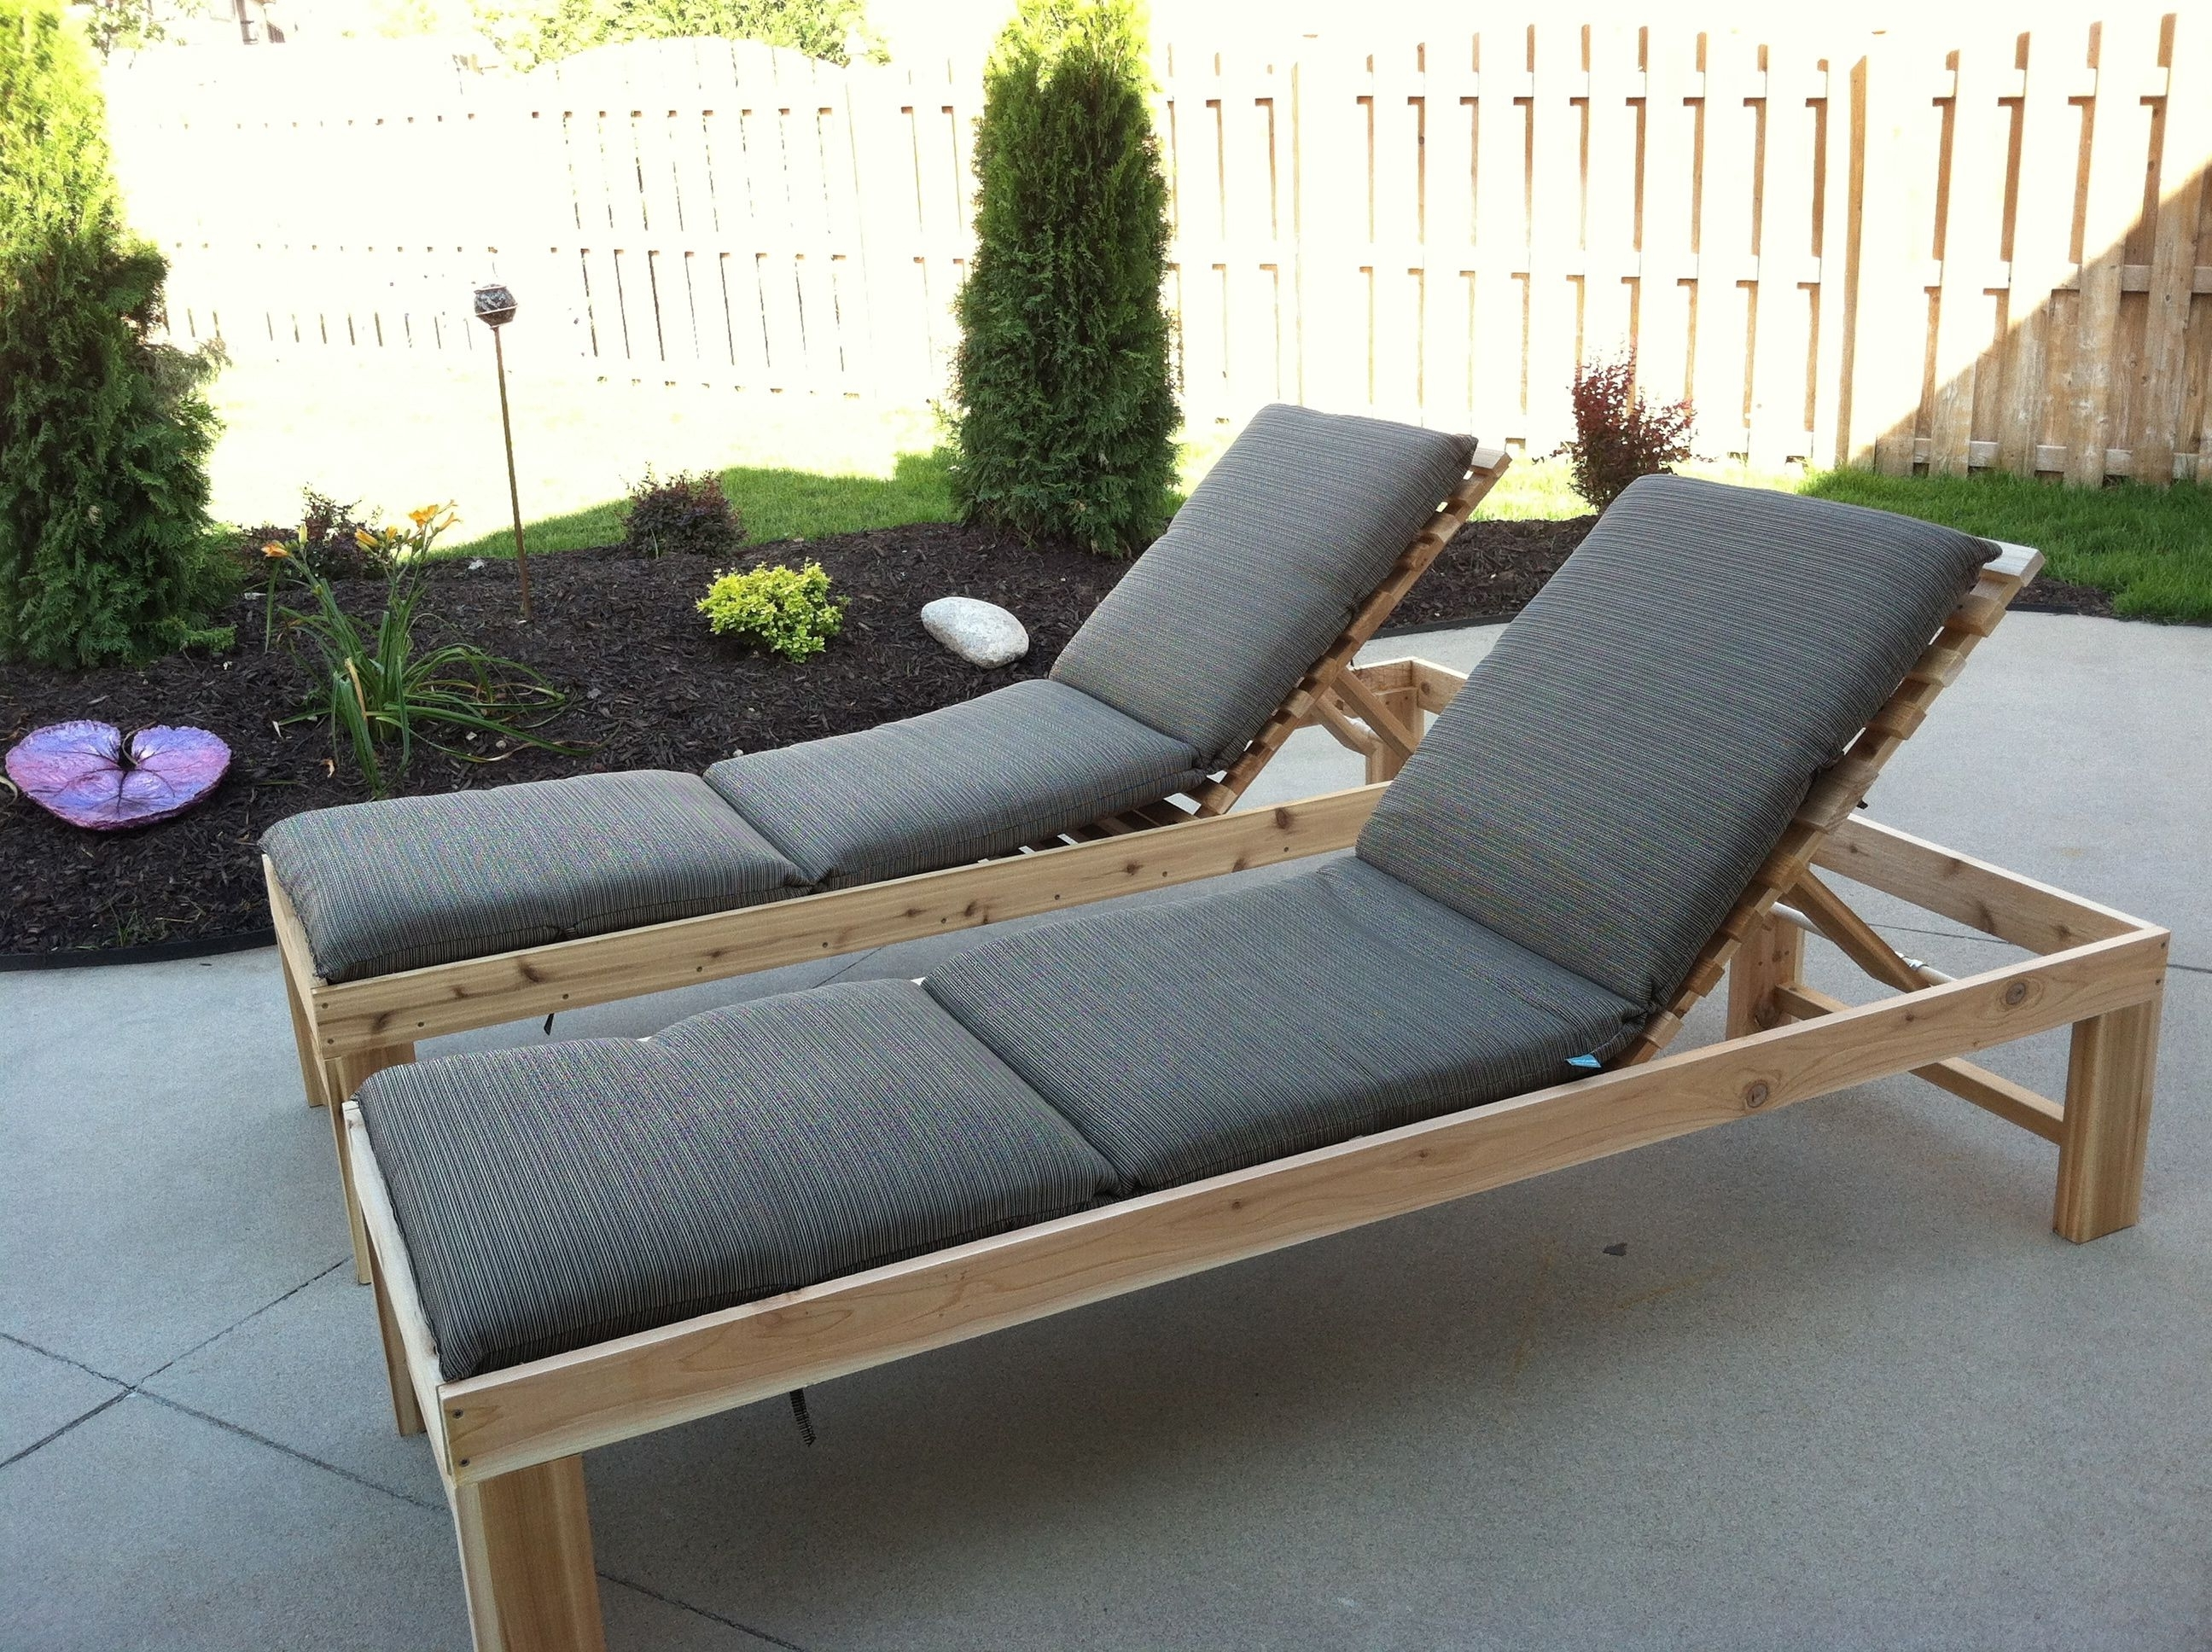 Comfortable Outdoor Chaise Lounge Chairs Intended For Famous Outdoor Chaise Lounge With Ergonomic Seating Settings – Traba Homes (View 3 of 15)